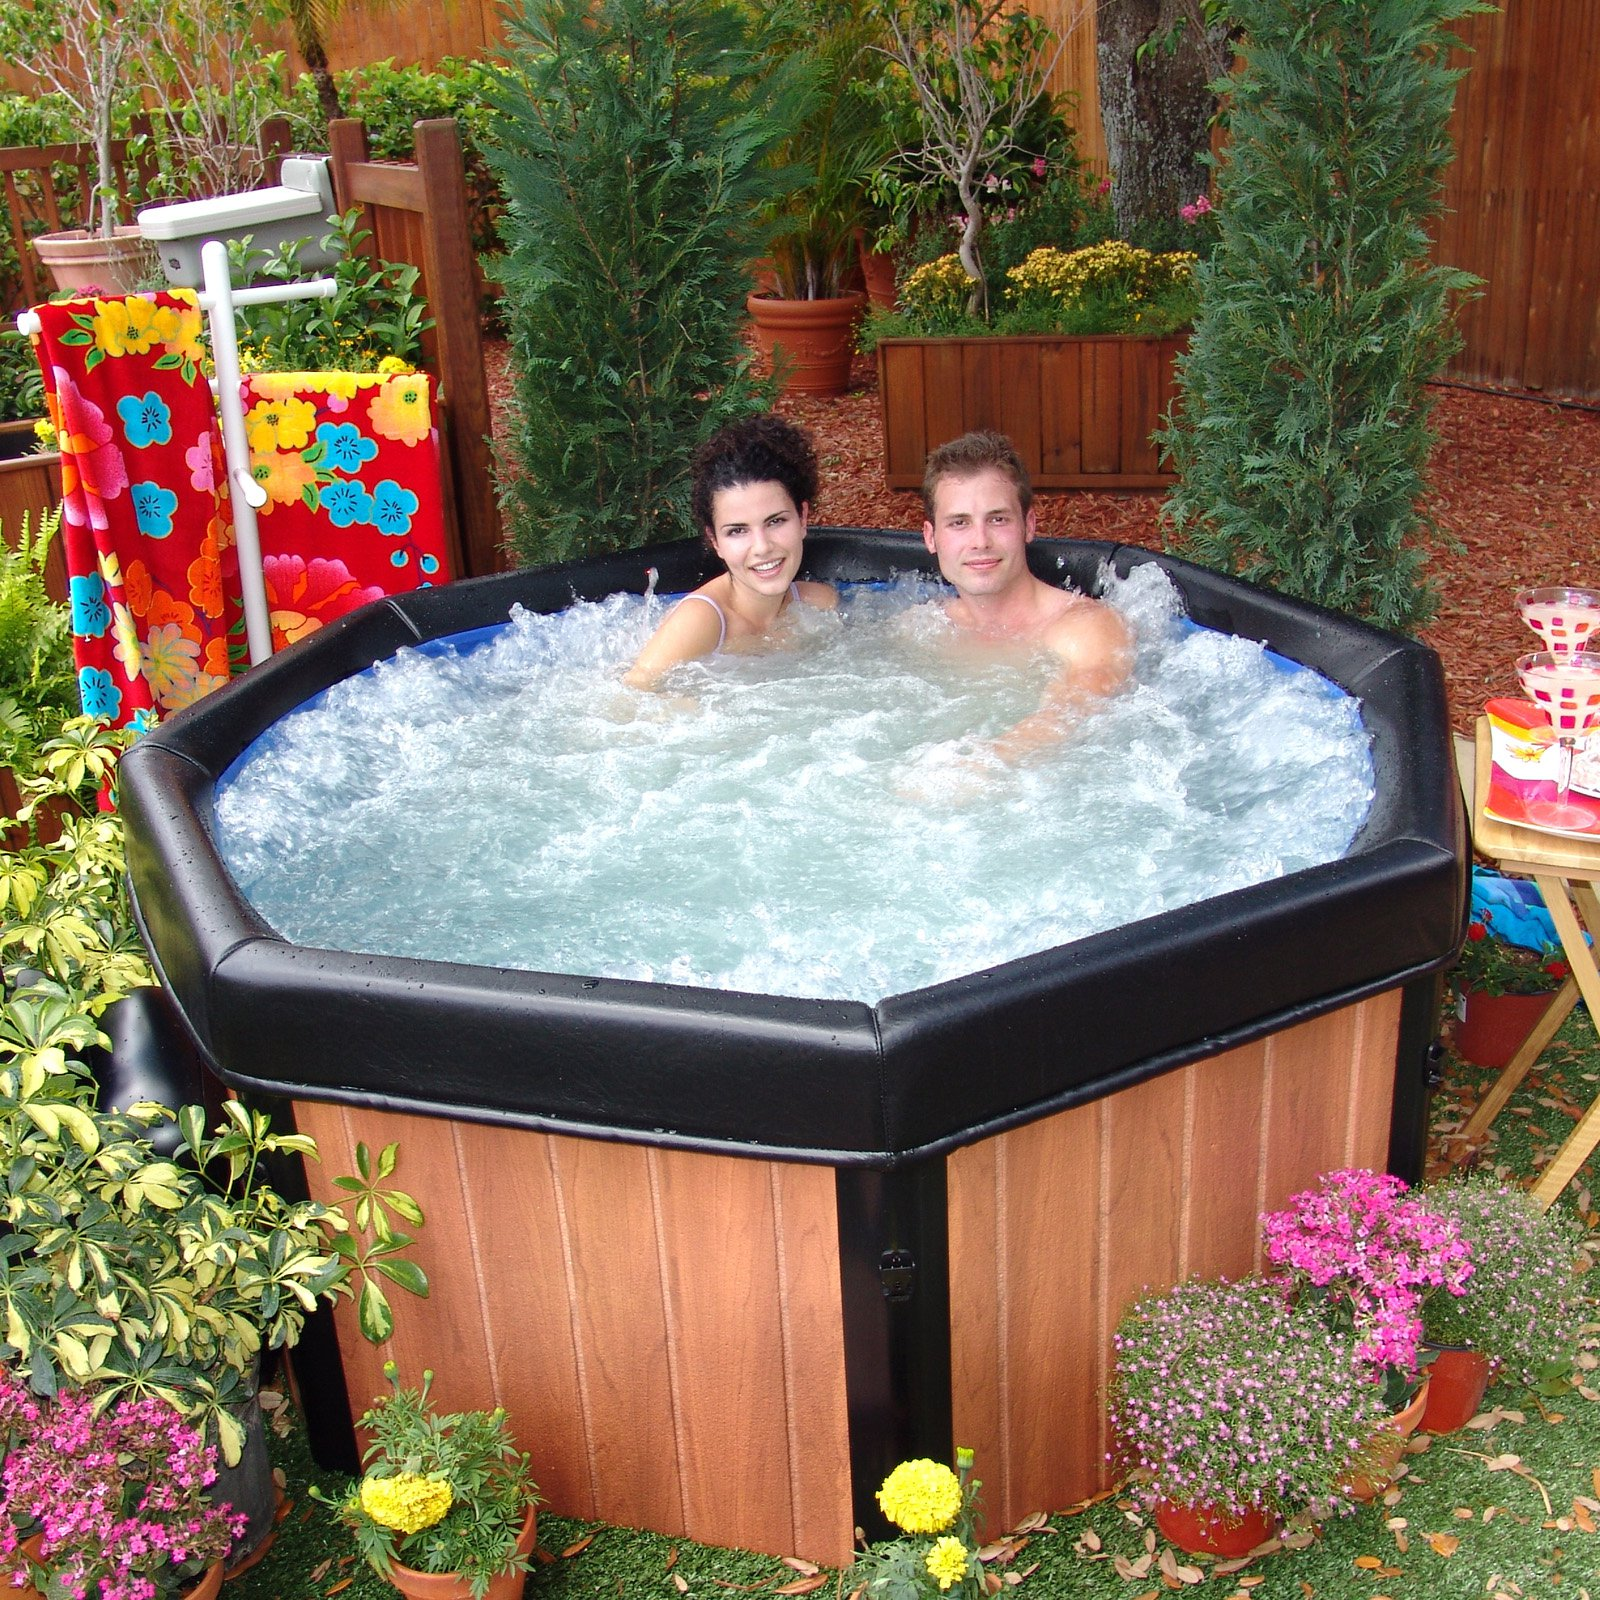 Aldi Intex Pool Intex Hot Tubs